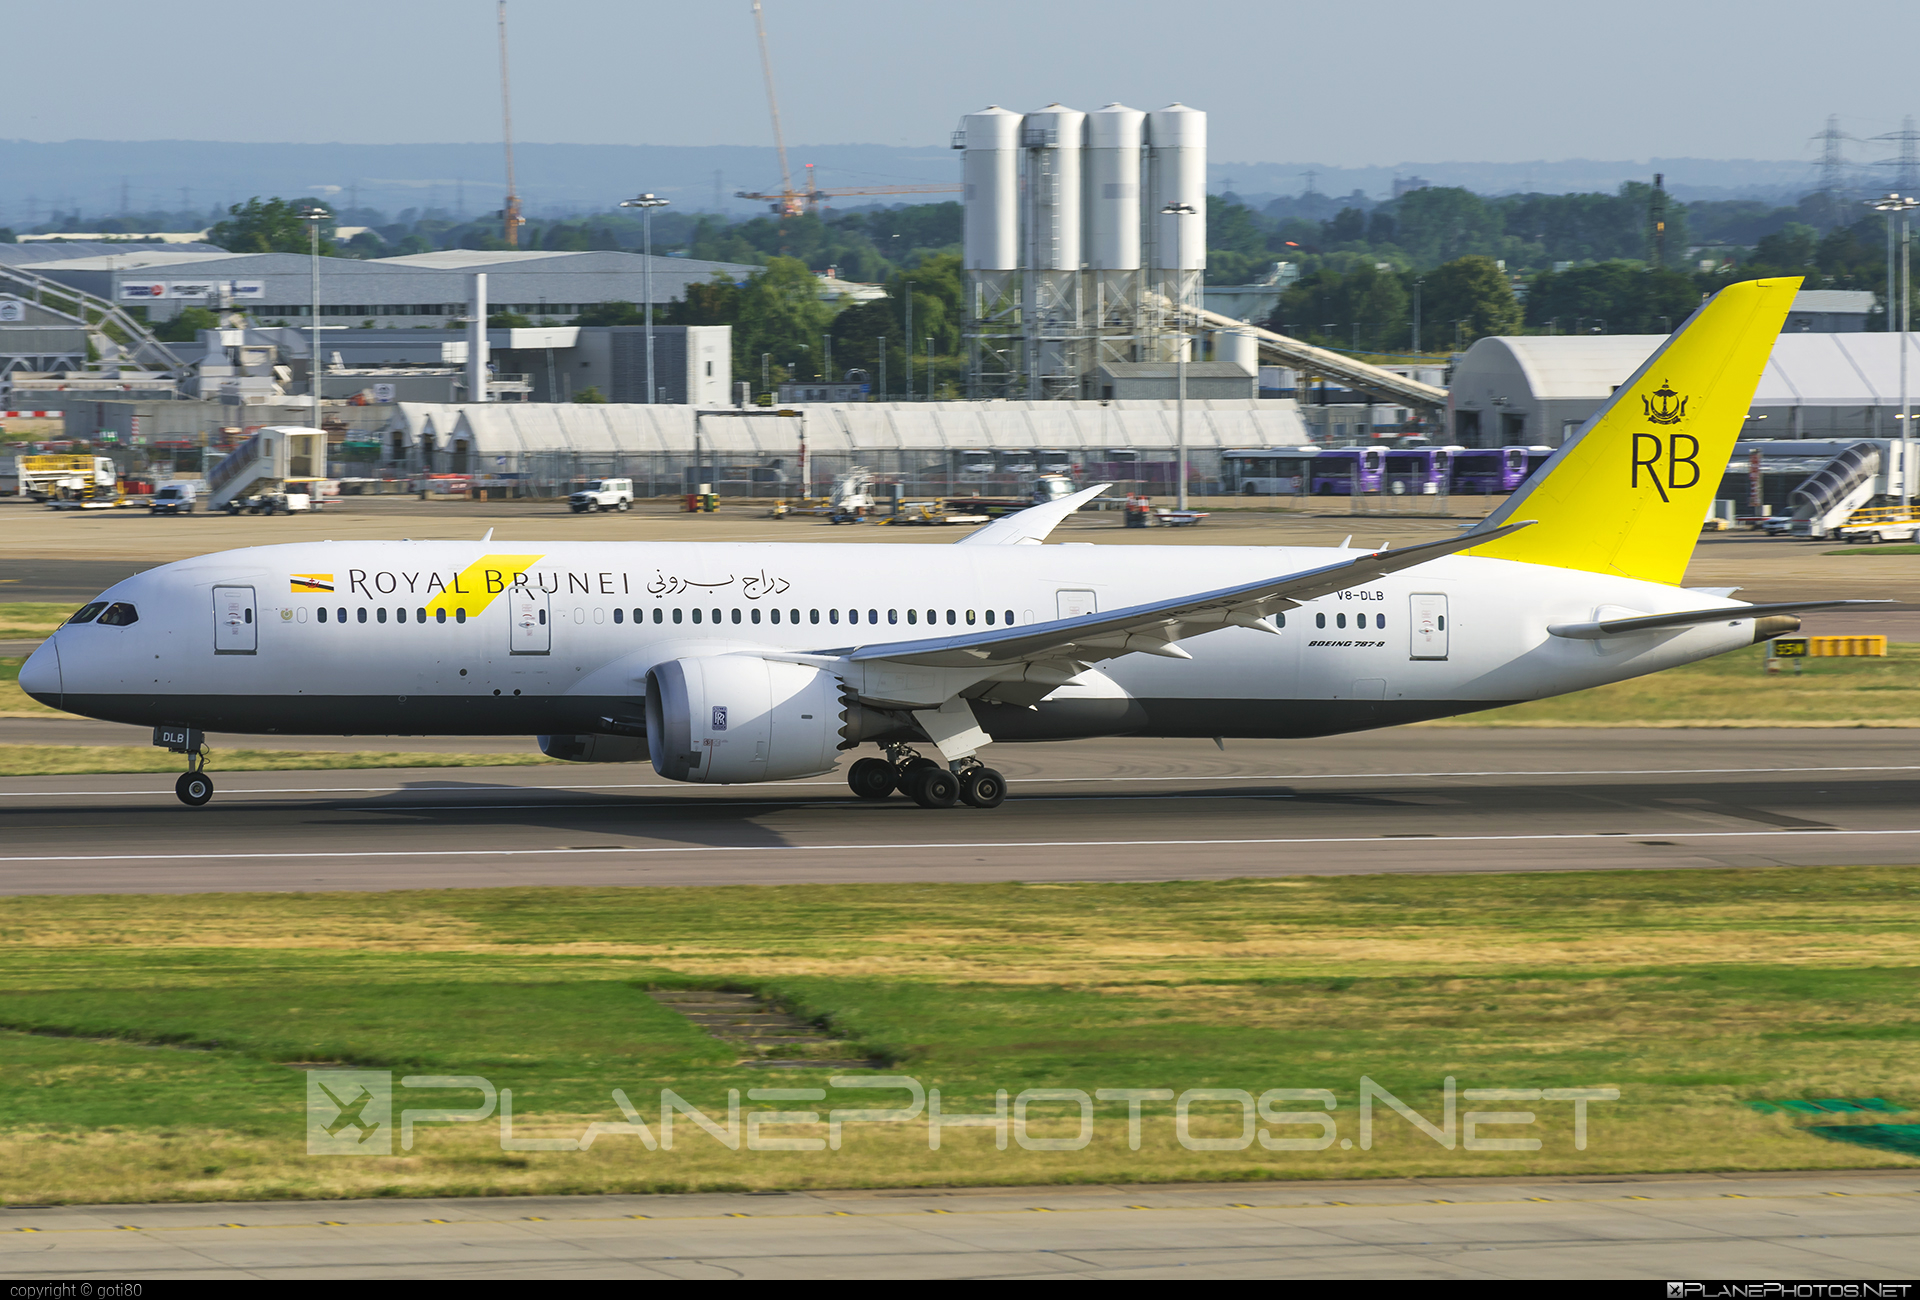 Boeing 787-8 Dreamliner - V8-DLB operated by Royal Brunei Airlines #b787 #boeing #boeing787 #dreamliner